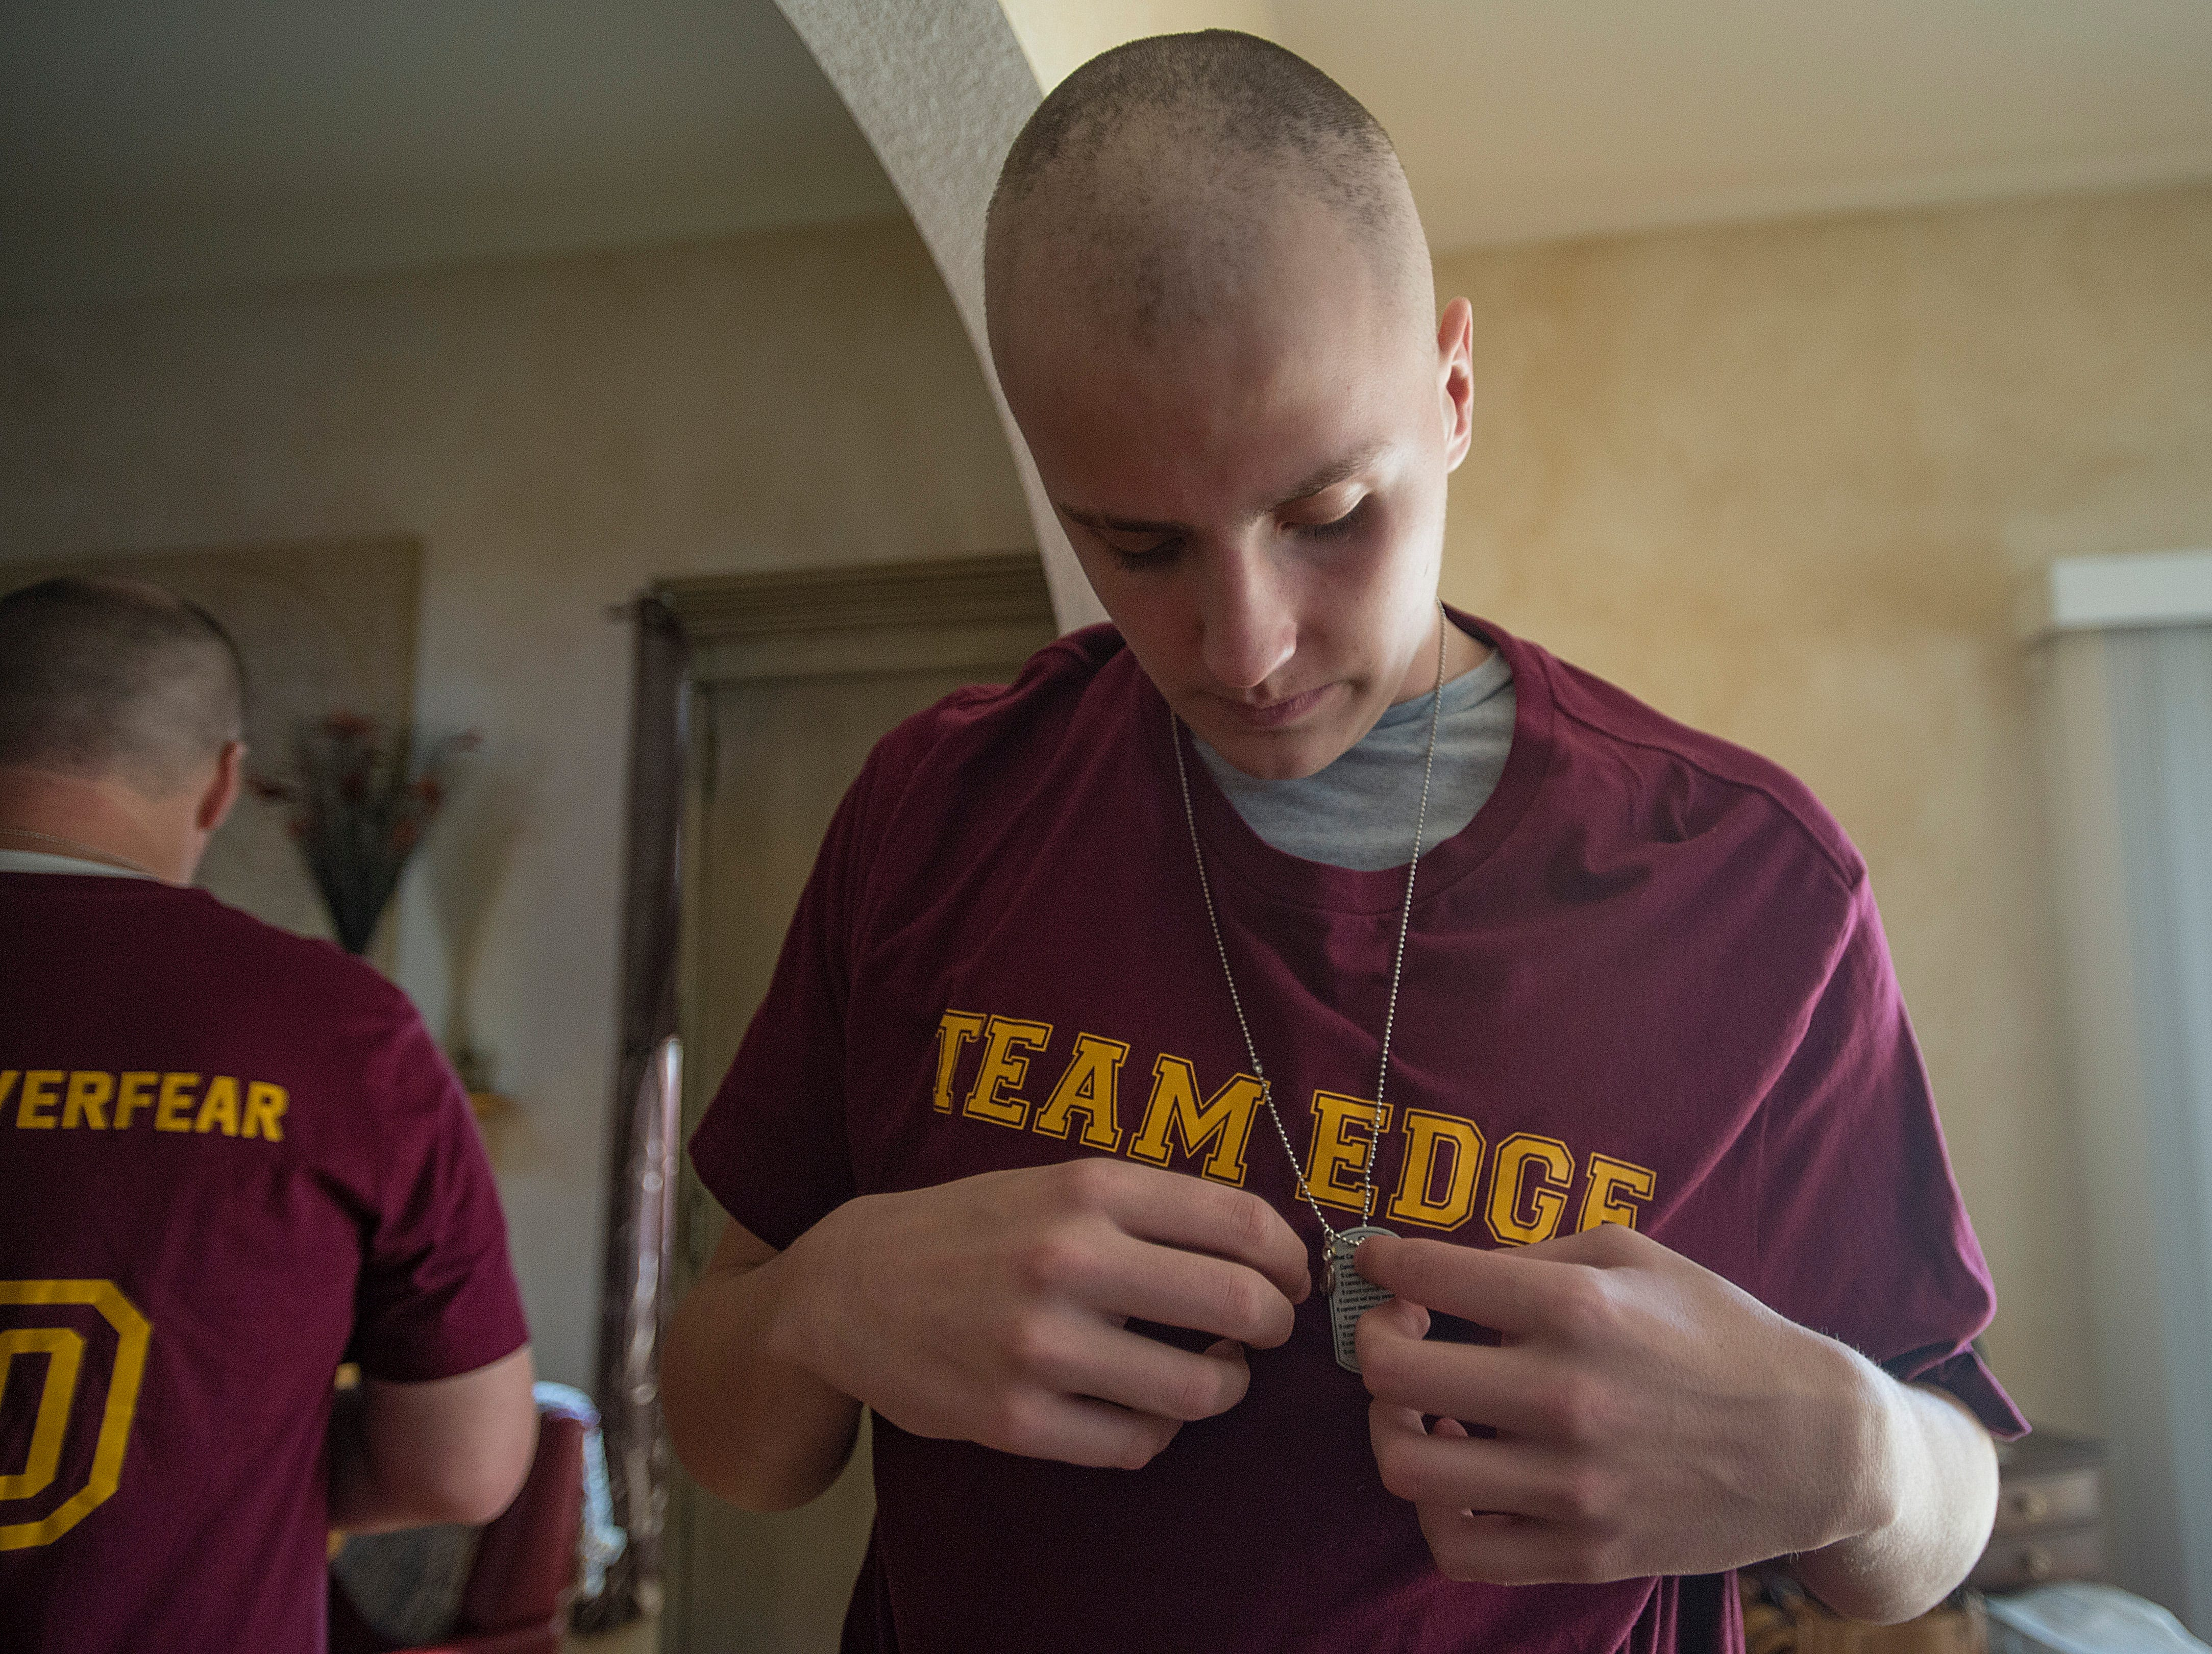 Carter Edgerley, 17, adjusts a dog tag around his neck at his home in Fort Collins on Tuesday, January 8, 2019. Edgerley and his family have been wearing the tags with positive messages on fighting cancer inscribed on them.